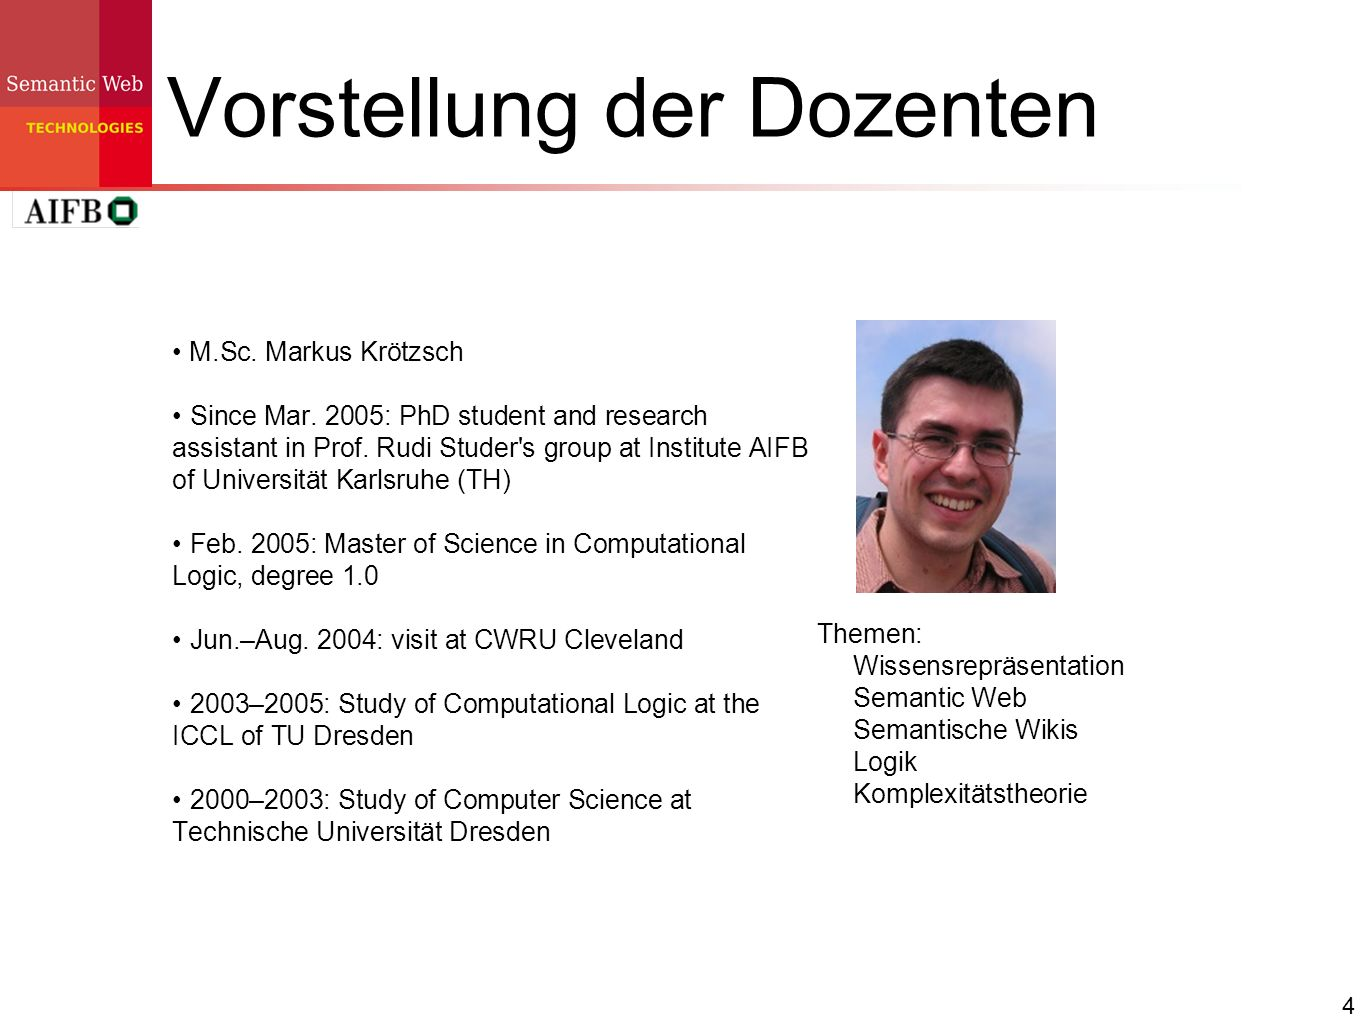 4 Vorstellung der Dozenten M.Sc. Markus Krötzsch Since Mar. 2005: PhD student and research assistant in Prof. Rudi Studer's group at Institute AIFB of